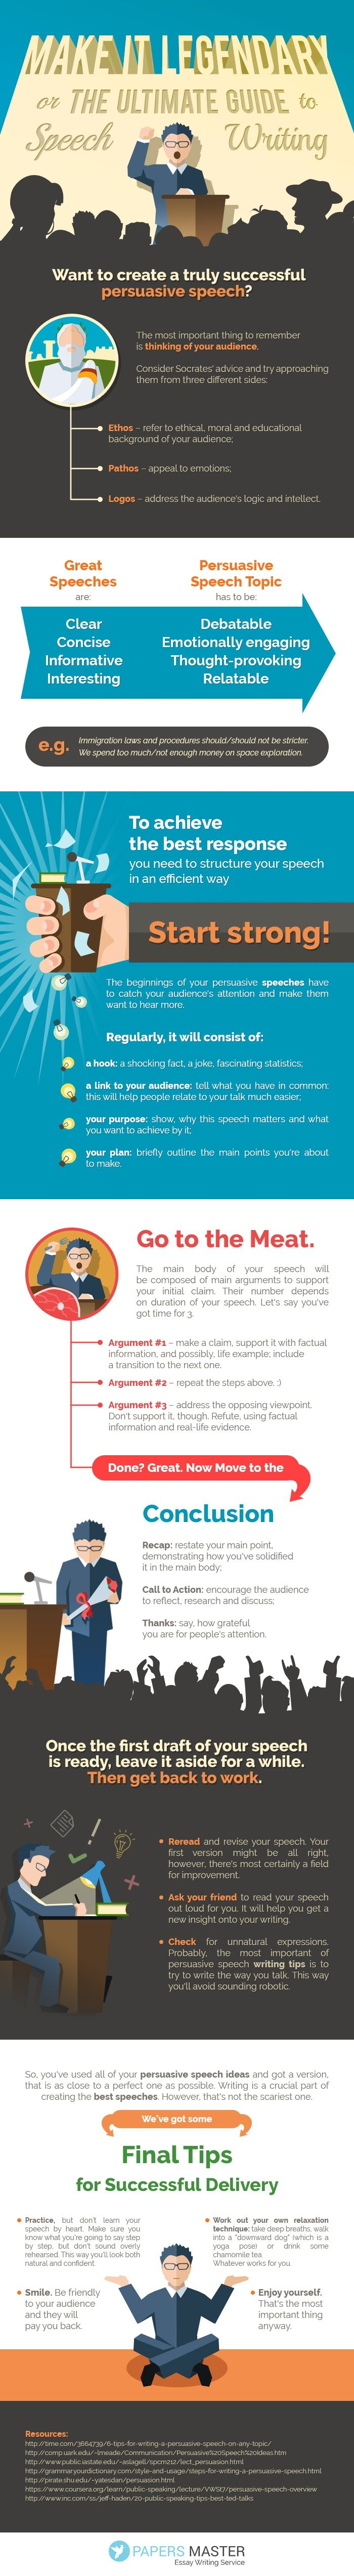 005 A Simple Guide to Writing a Memorable Speech [Infographic